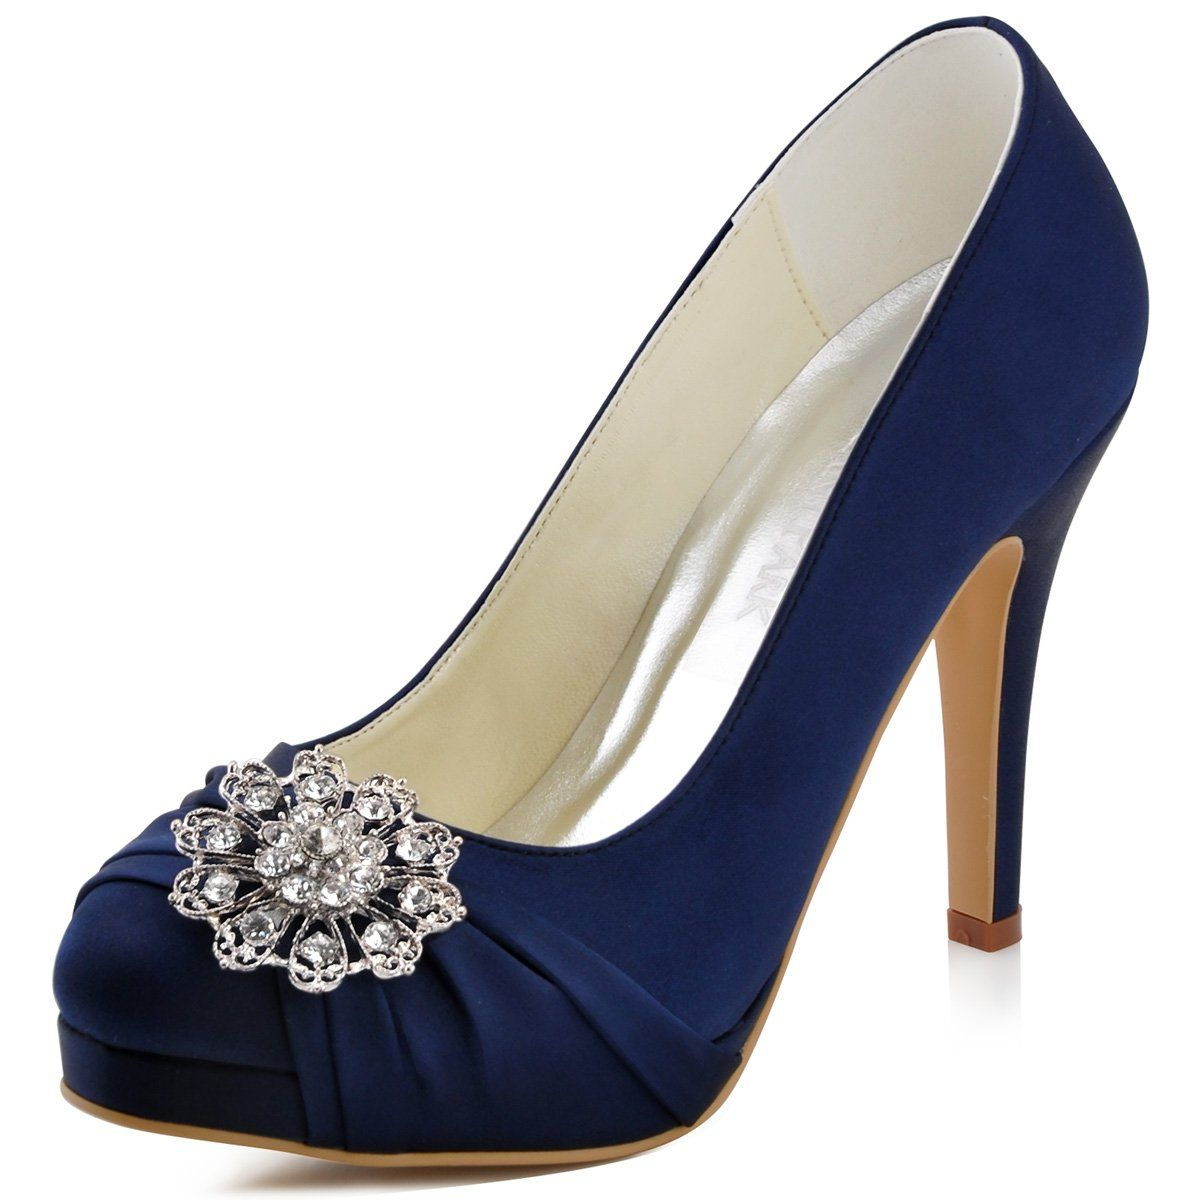 blue shoes wedding elegantpark ep2015 pf women s prom pumps rhinstones satin 1945